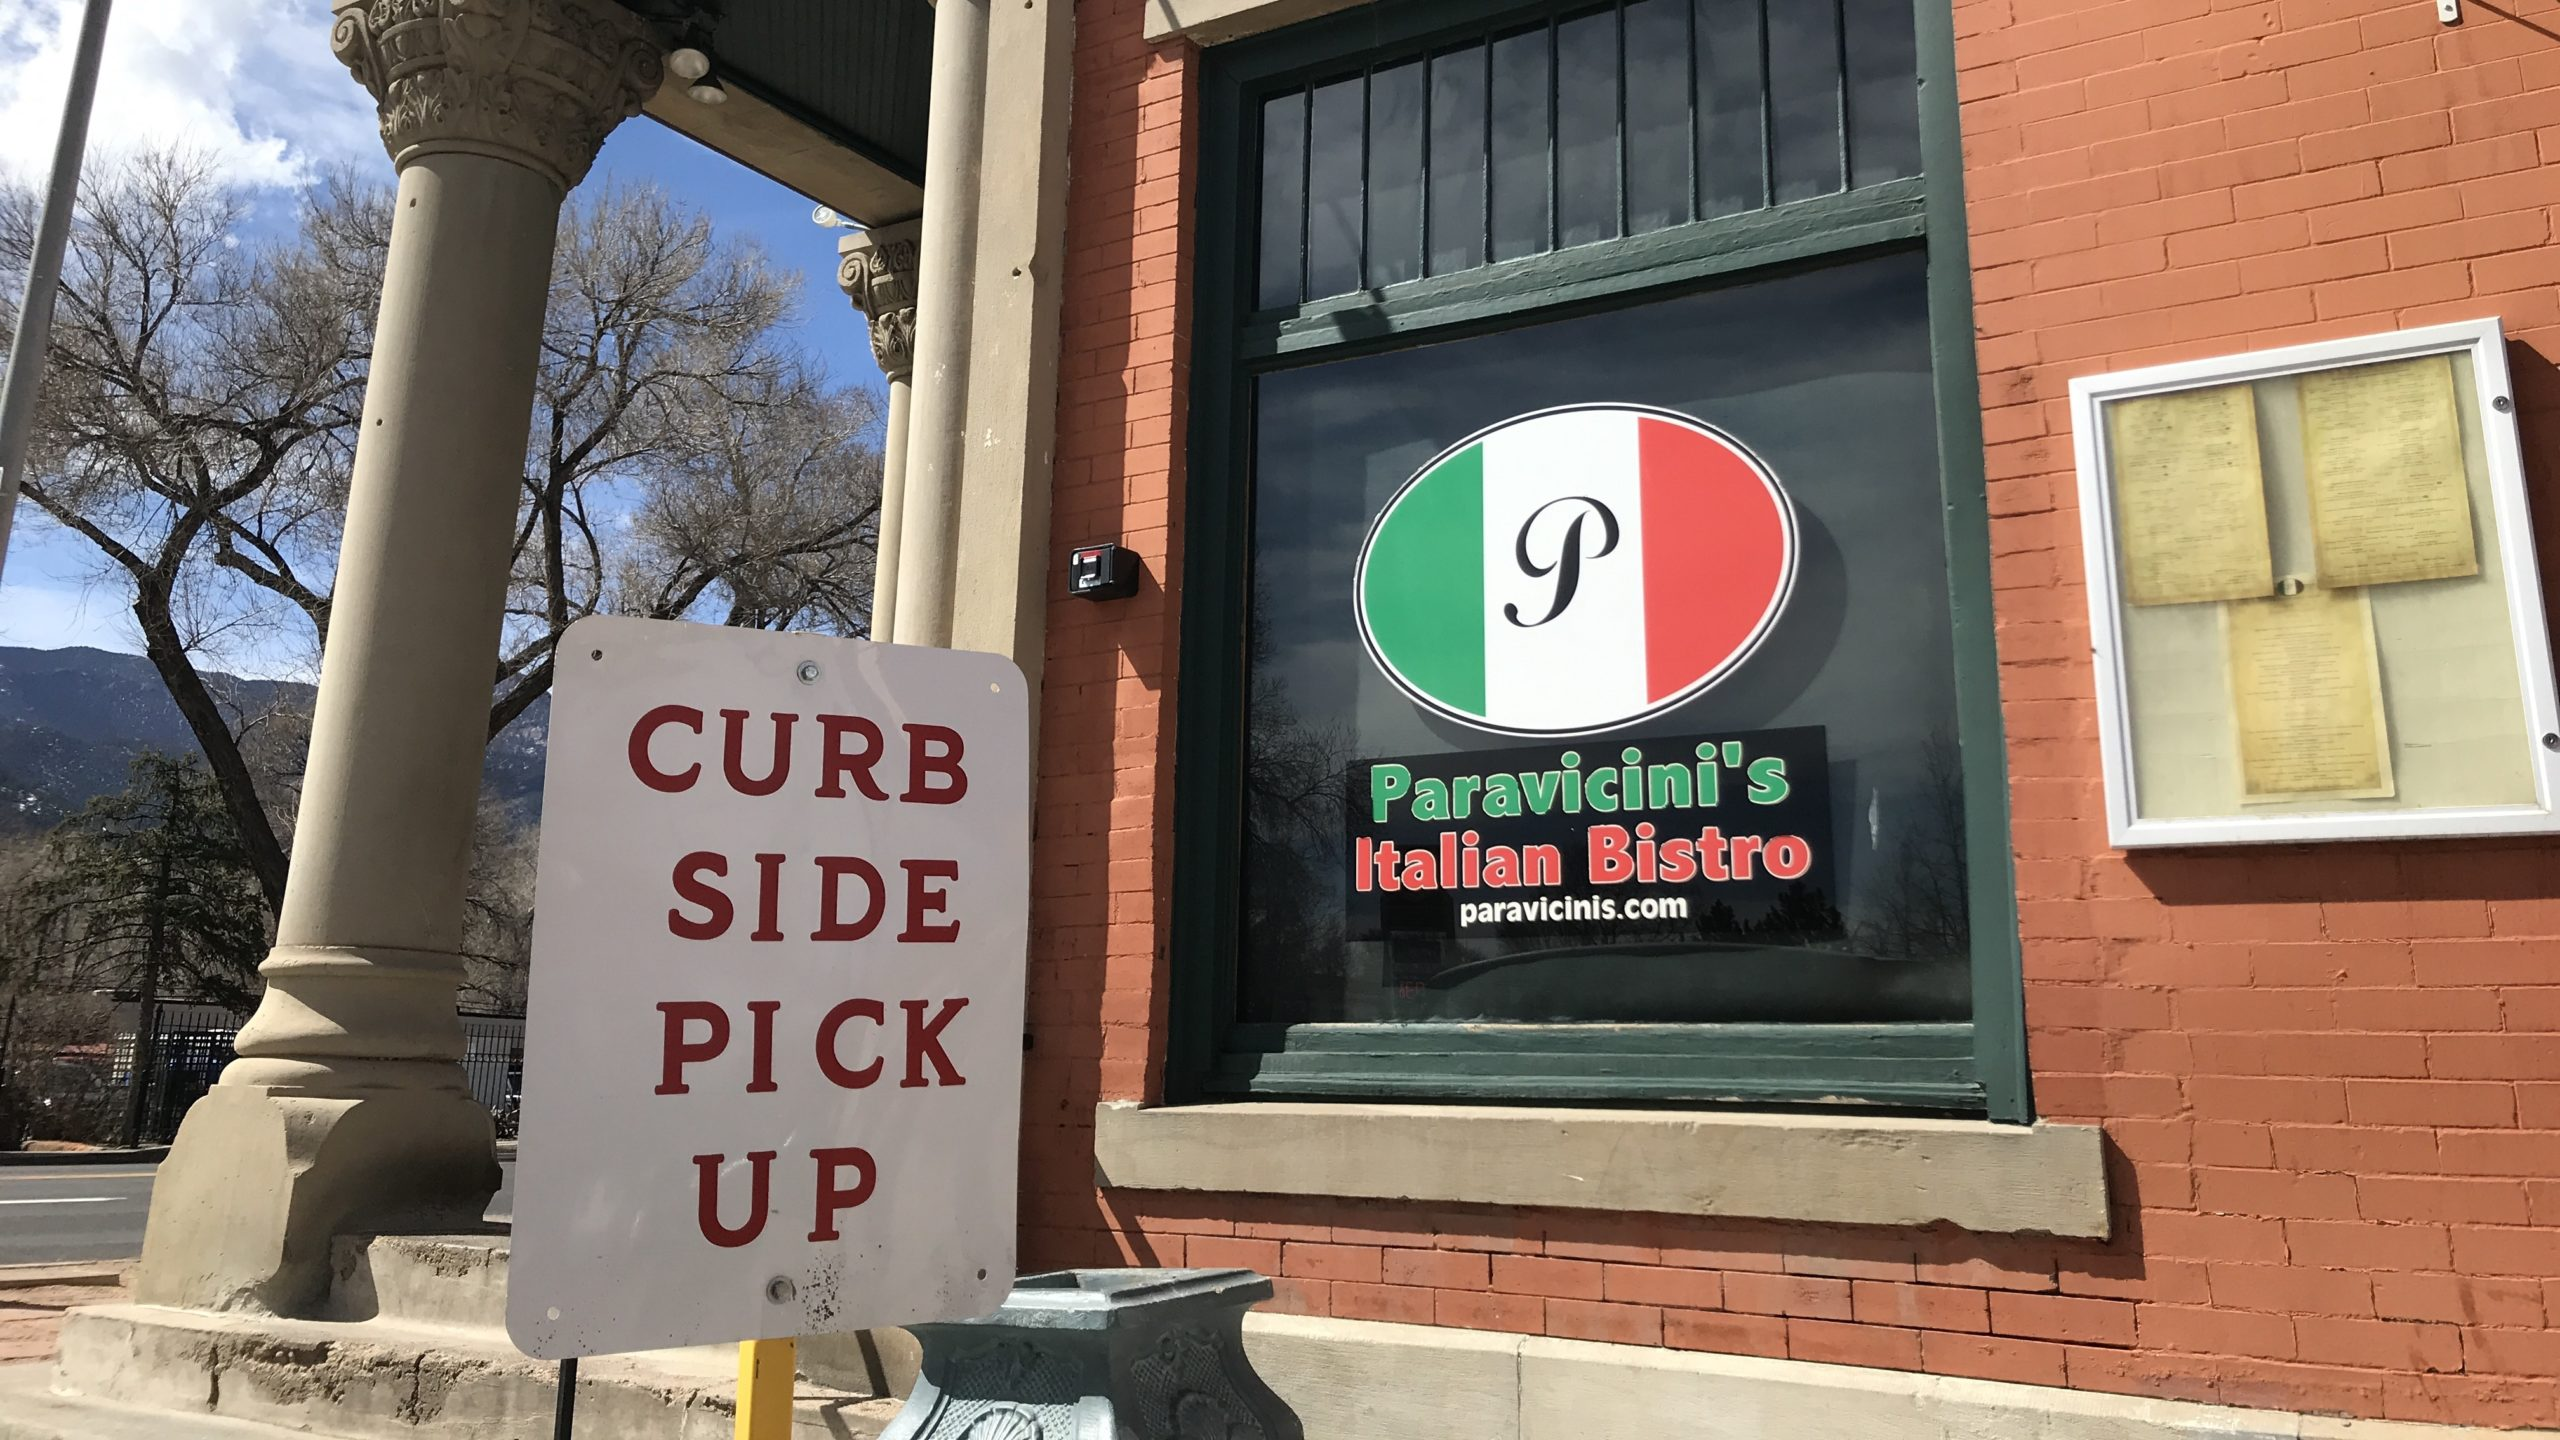 Paravicini's Italian Bistro in Colorado Springs adds curb side pick up service amid Coronavirus fears